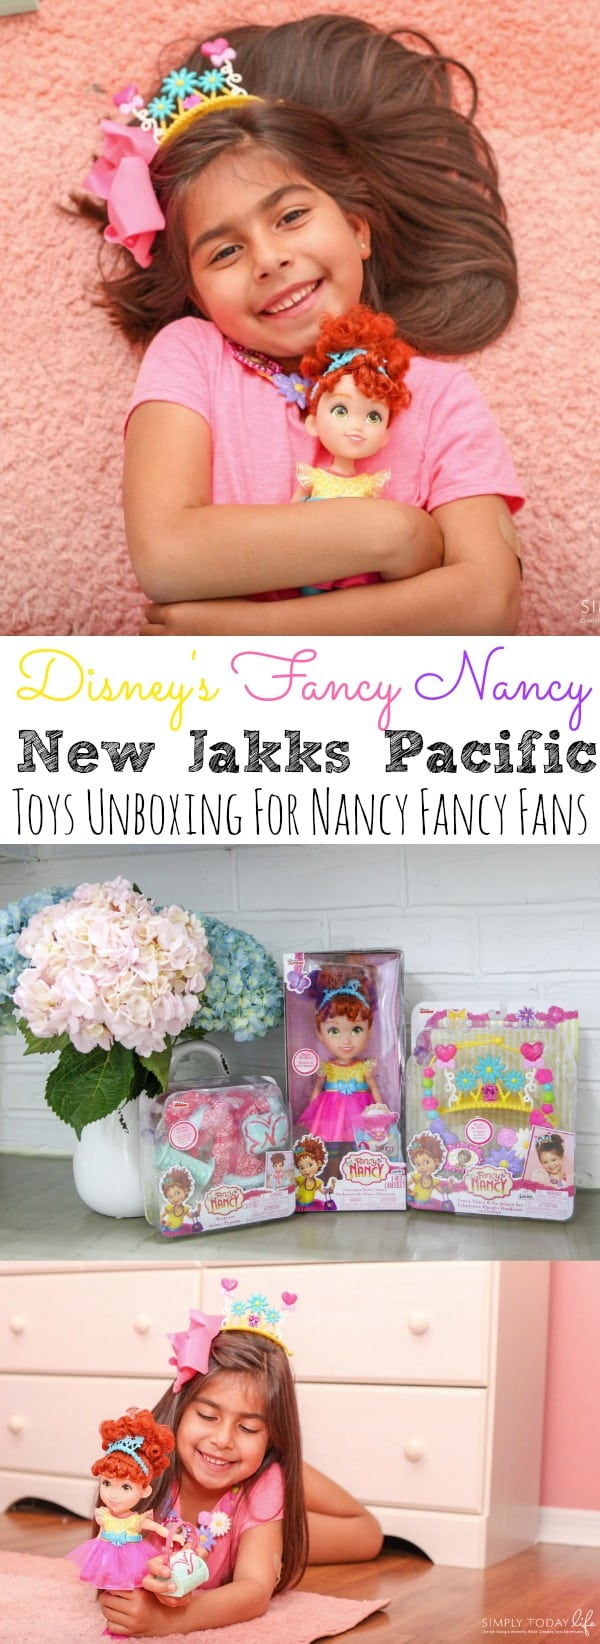 New Disney's Fancy Nancy Toys Unboxing | Jakks Pacific Toys - simplytodaylife.com